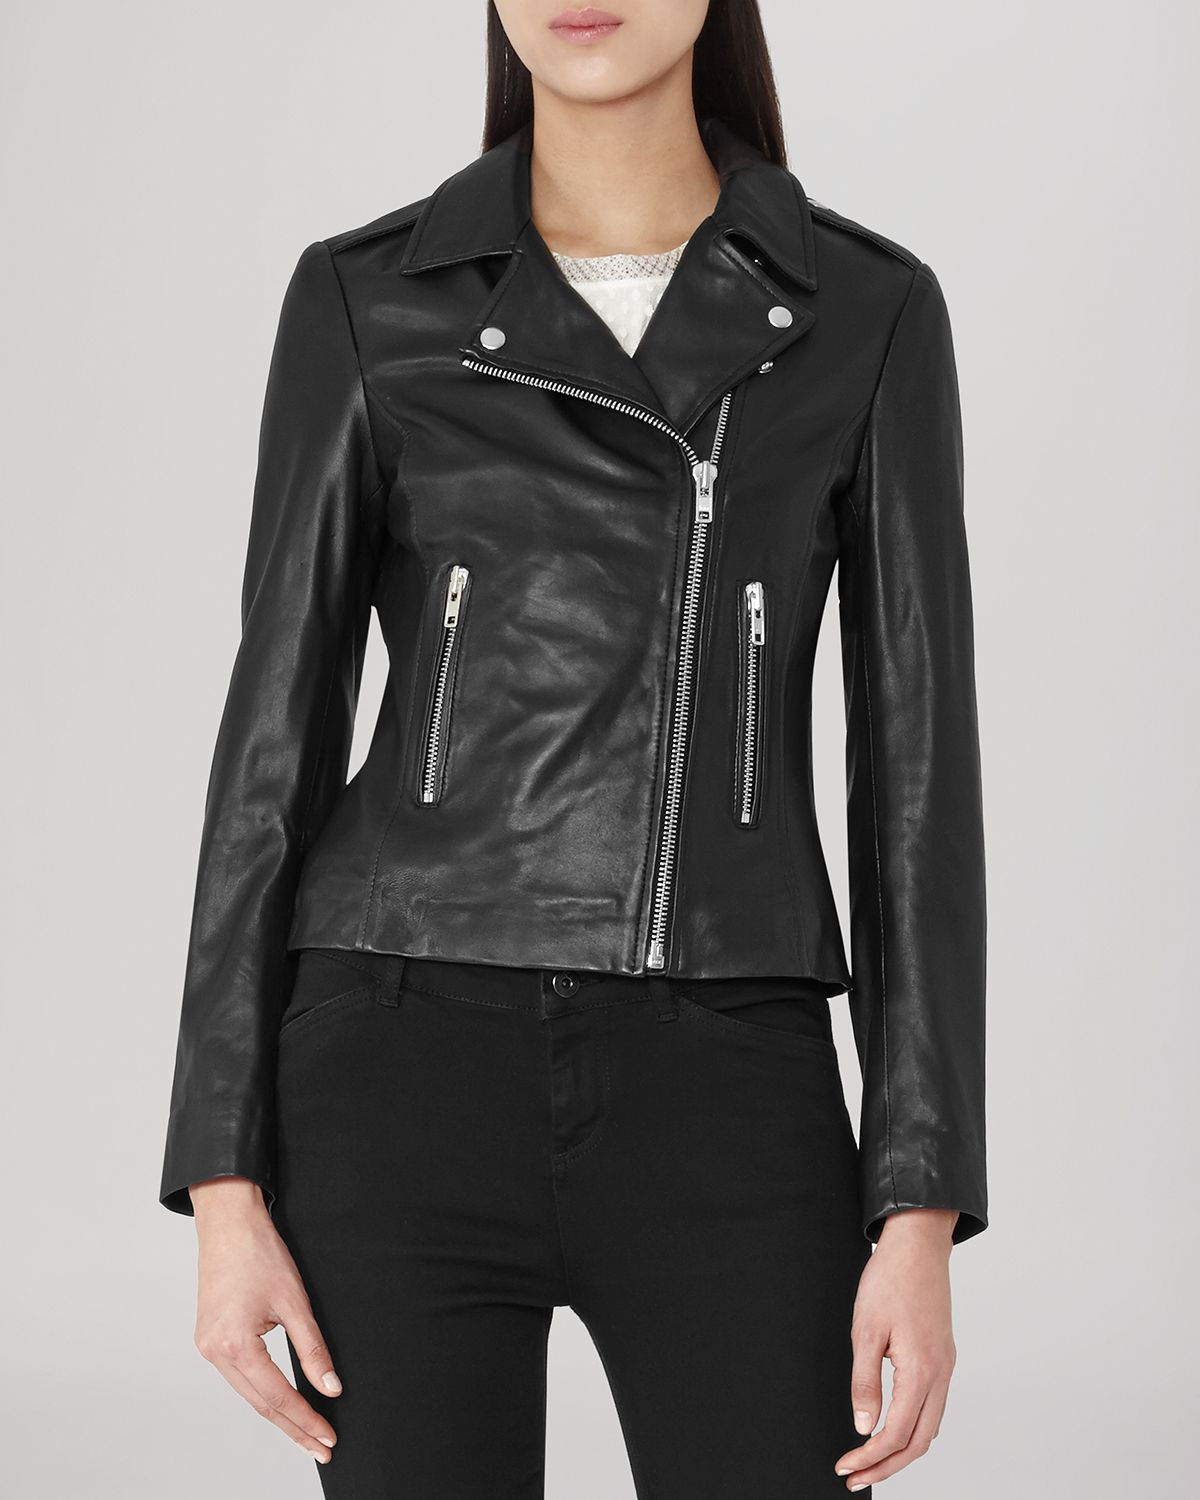 Reiss leather jackets